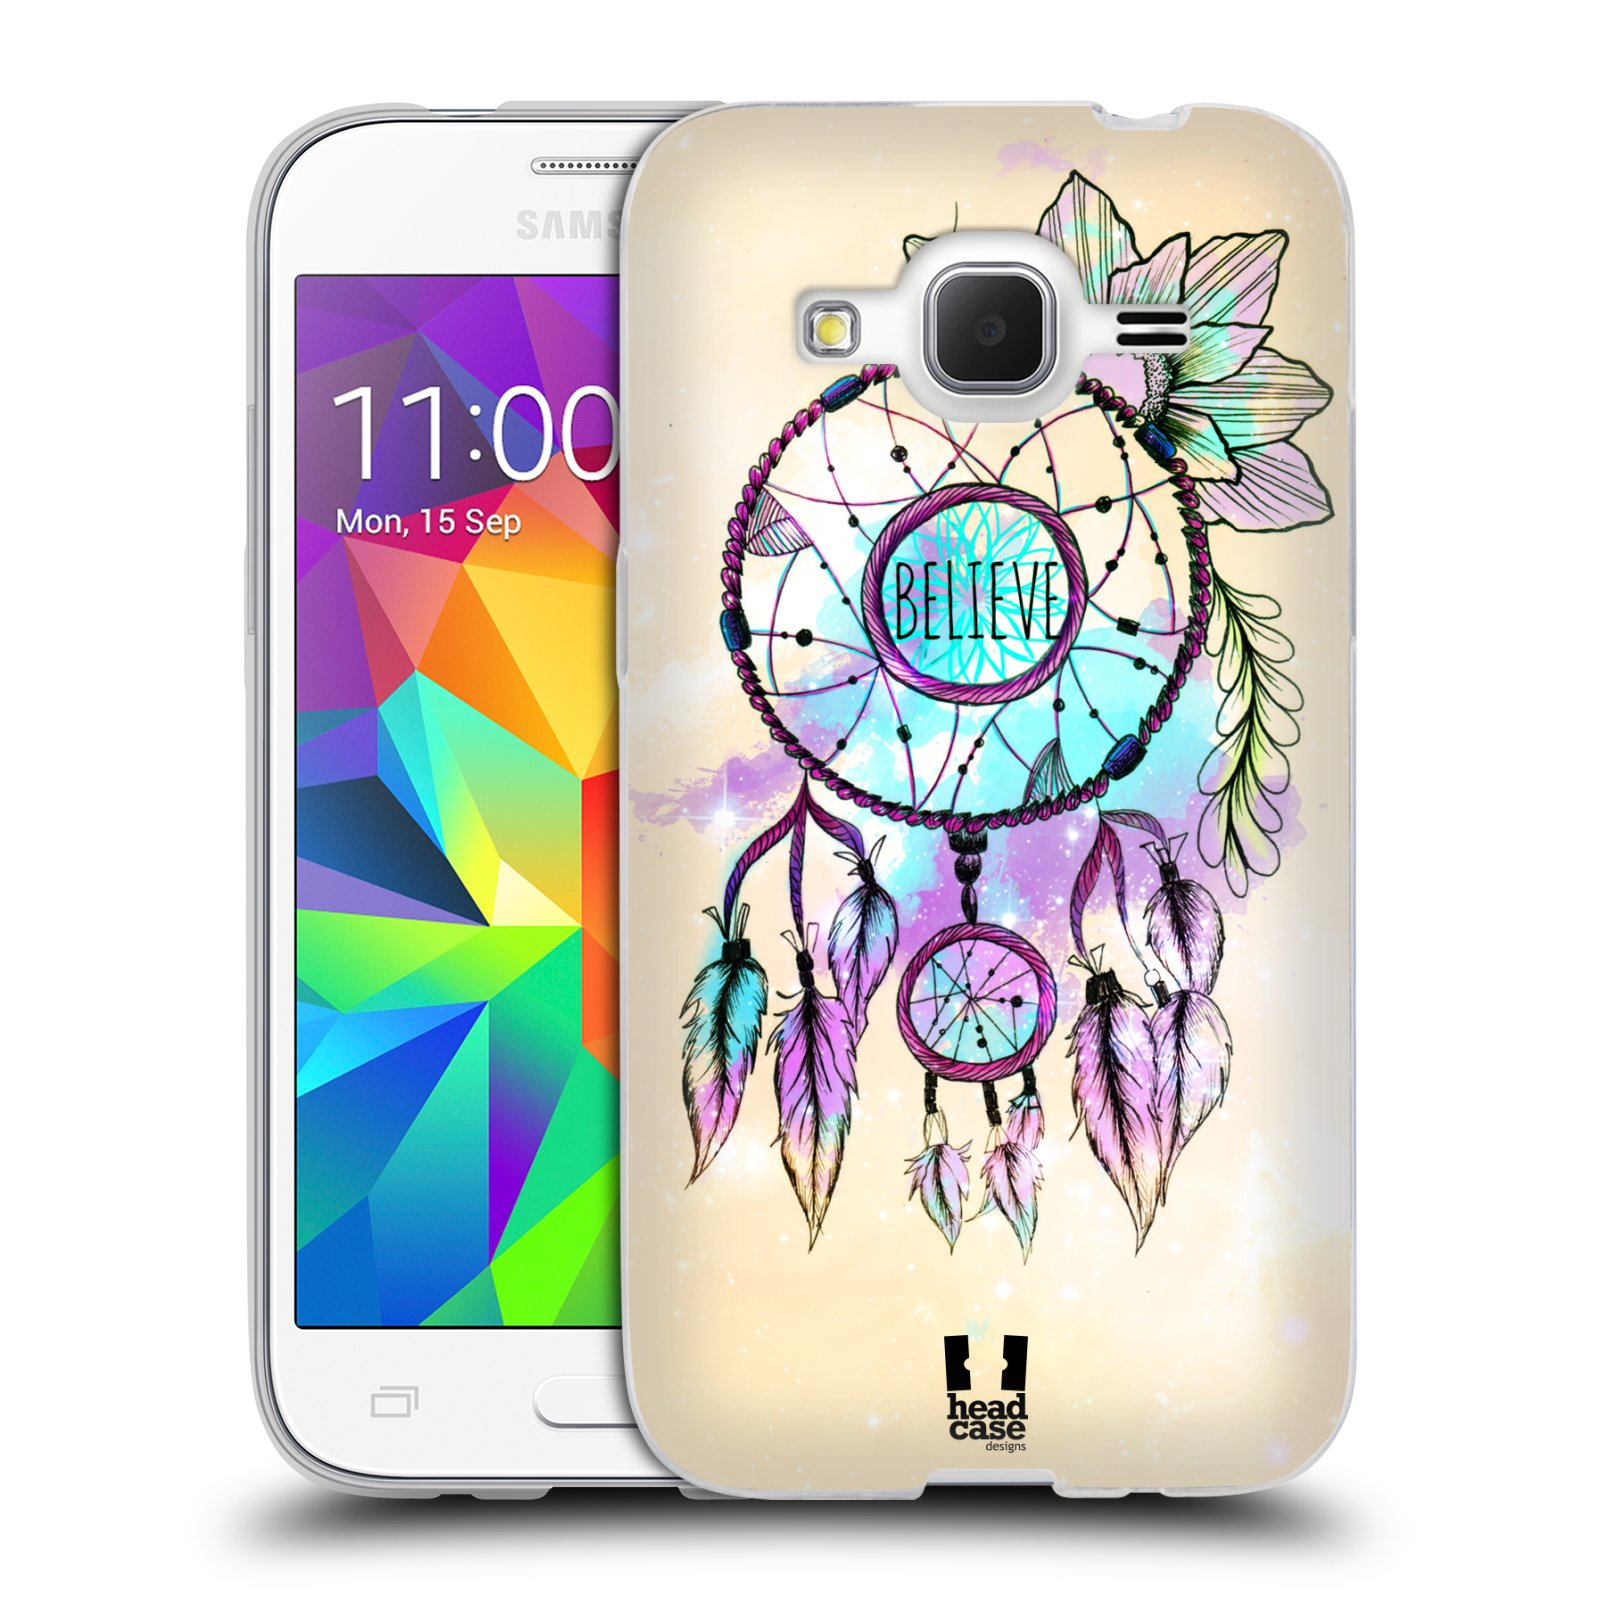 Silikonové pouzdro na mobil Samsung Galaxy Core Prime VE HEAD CASE MIX BELIEVE